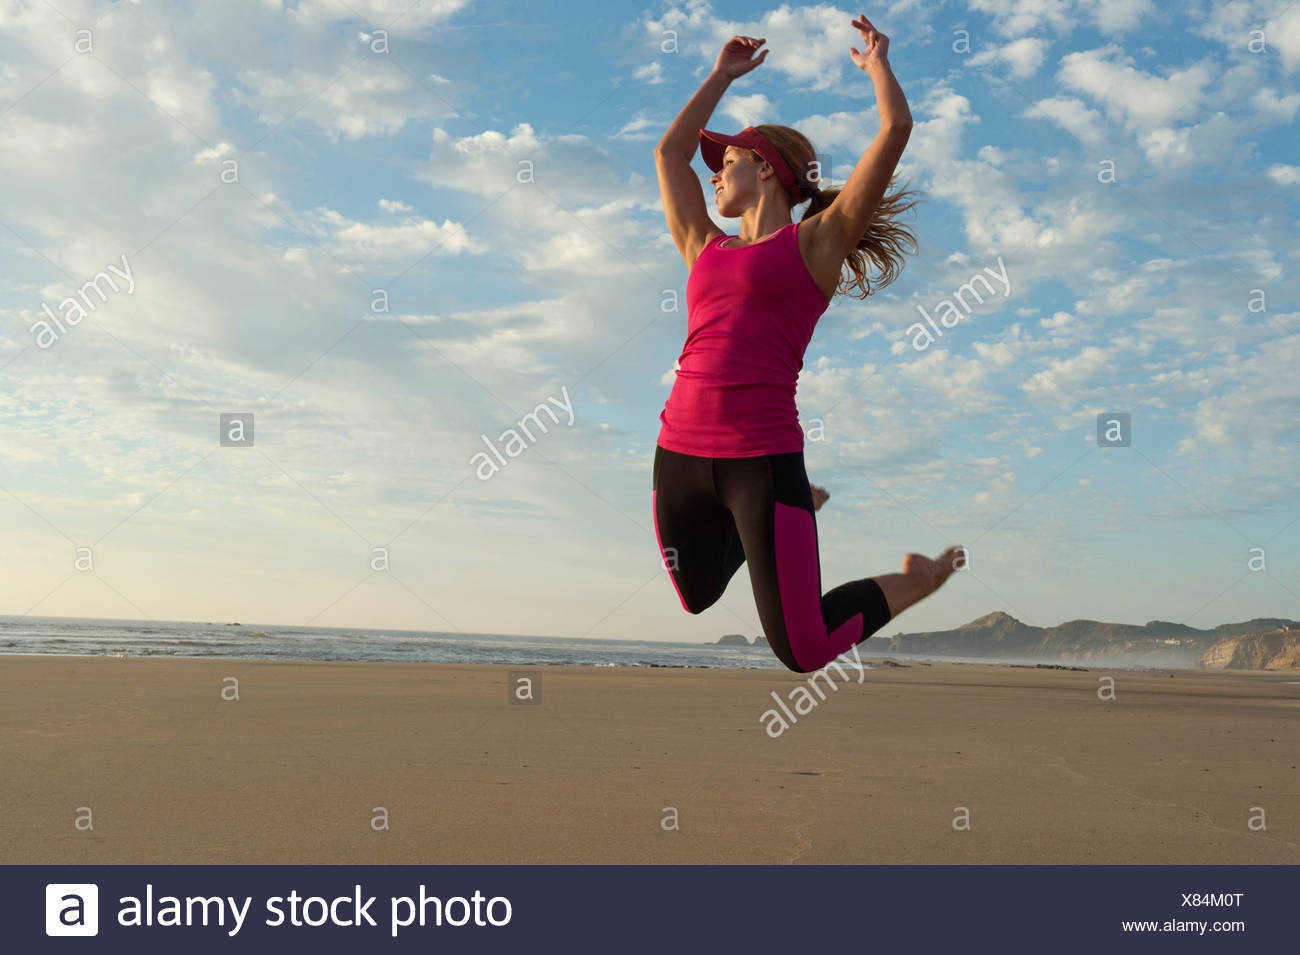 Young woman jumping in the air on beach - Stock Image